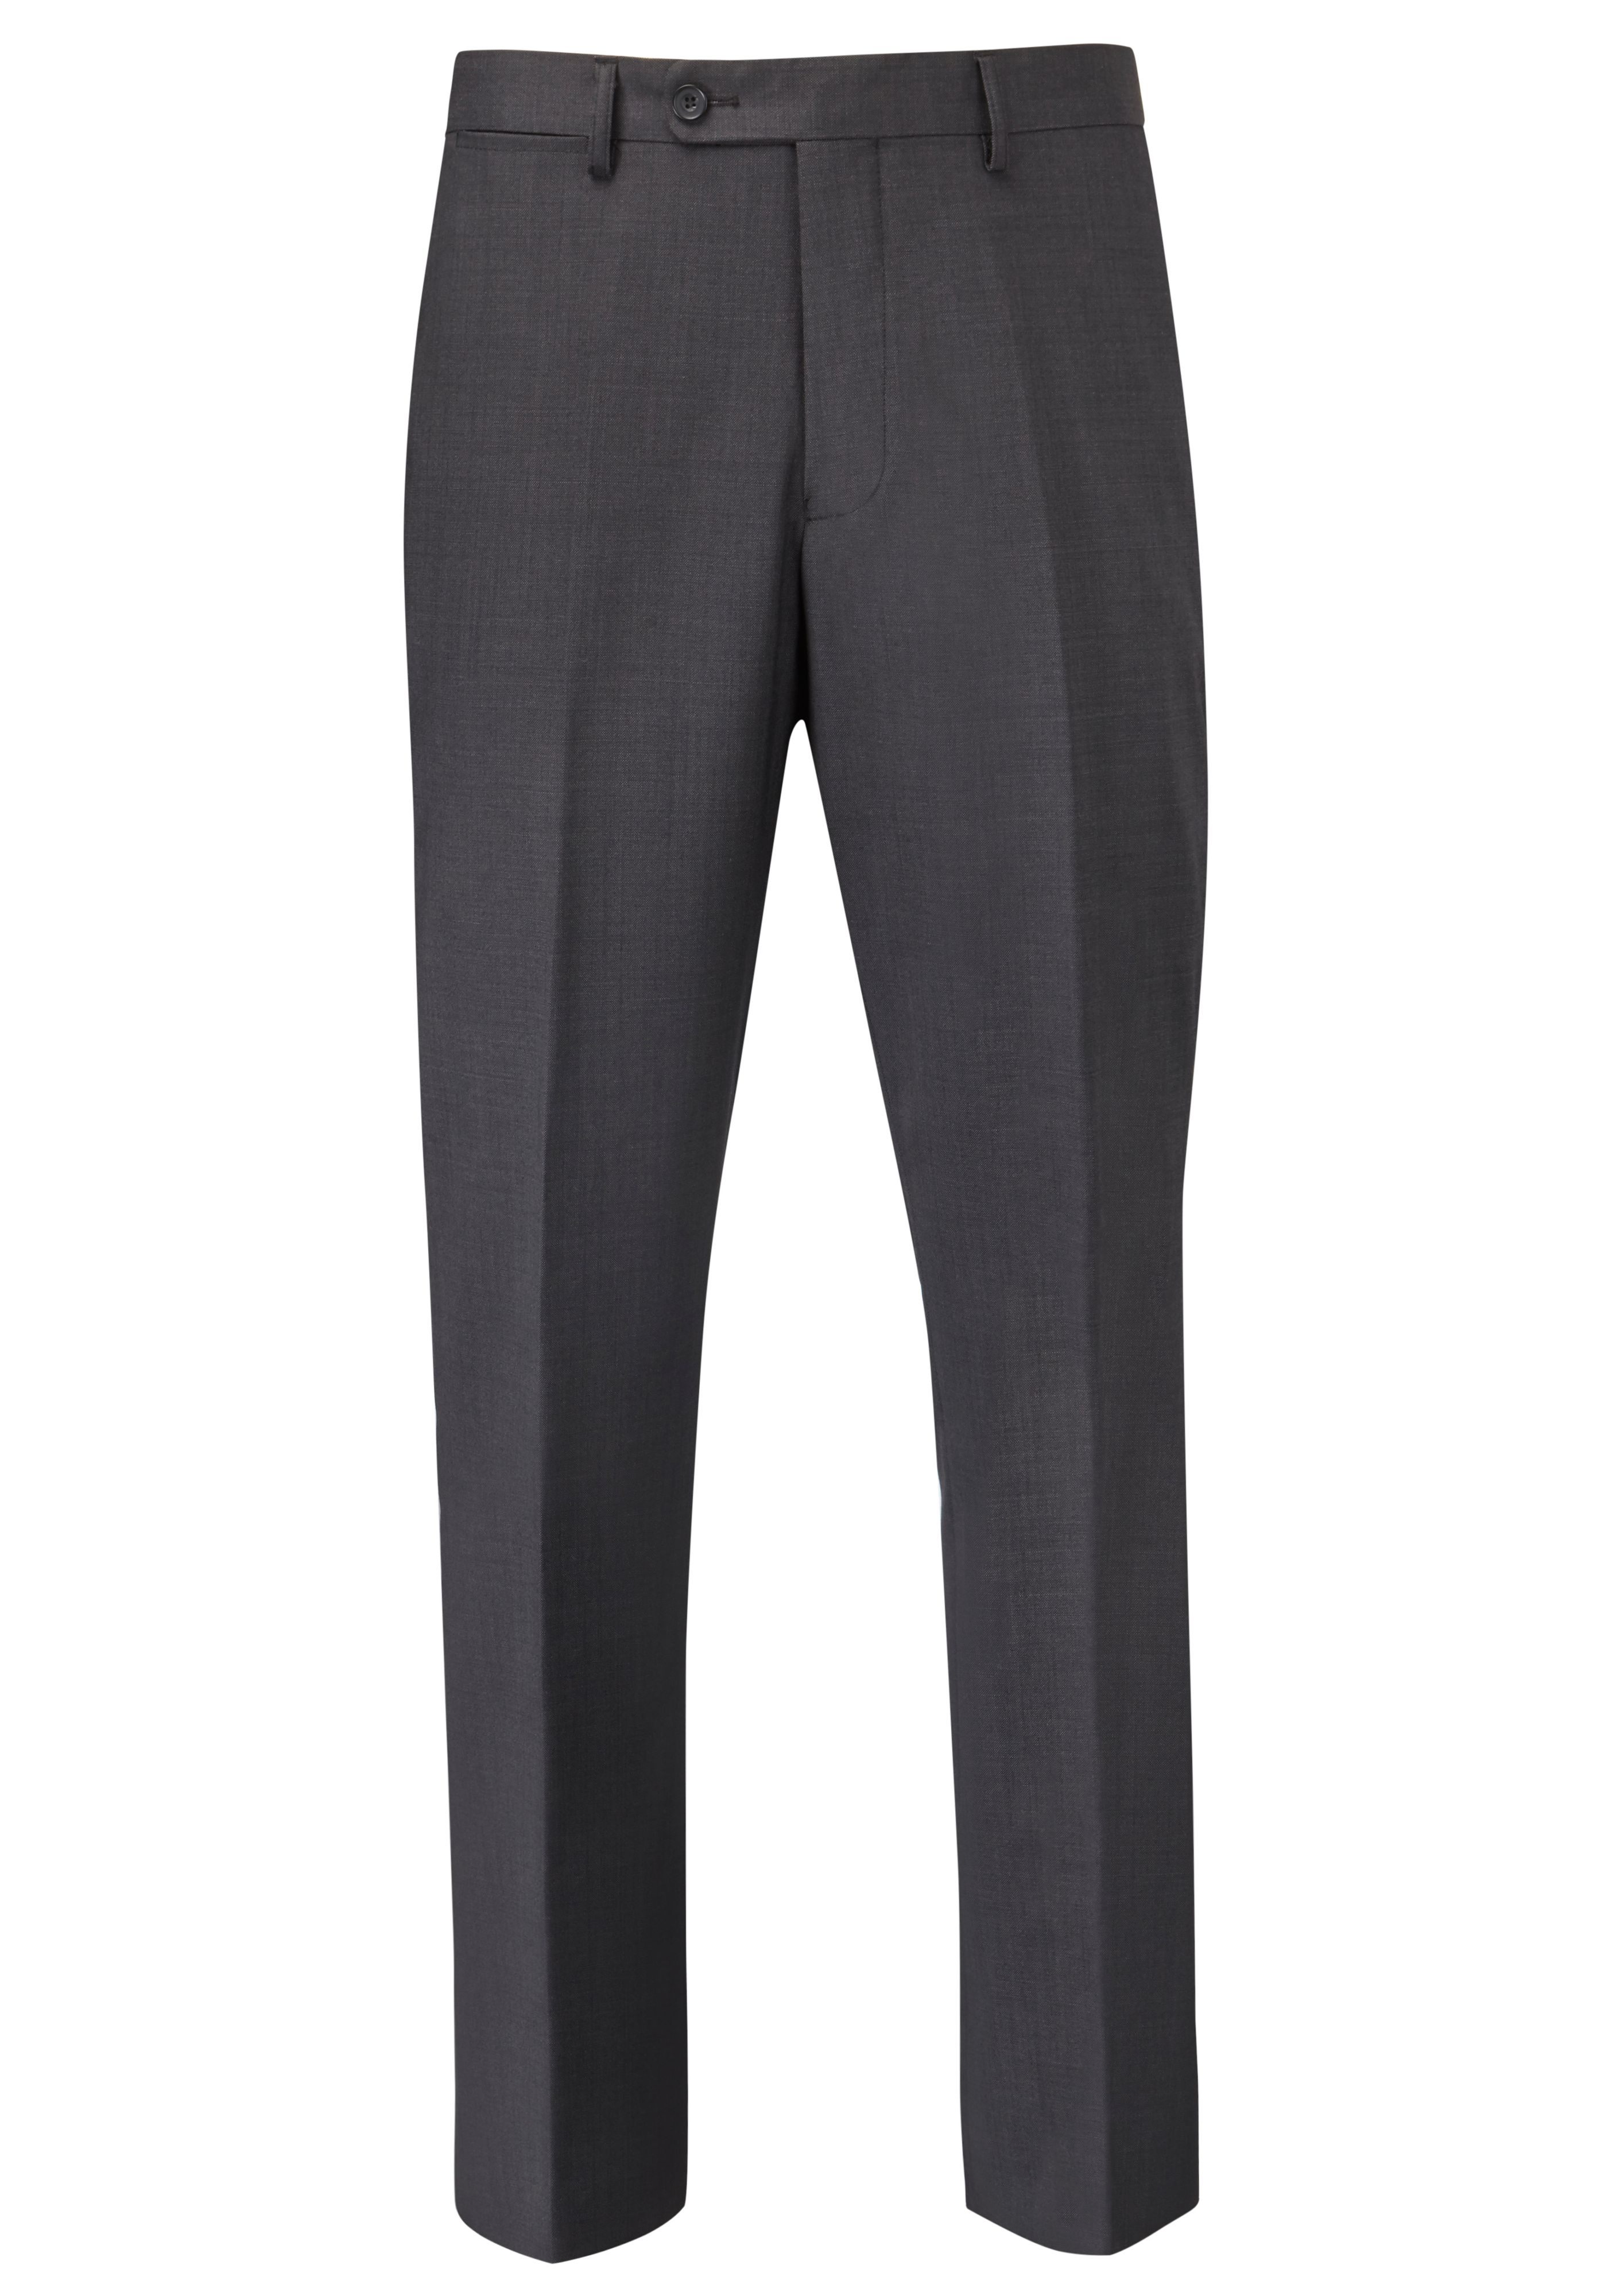 Haxby formal tailored suit trouser